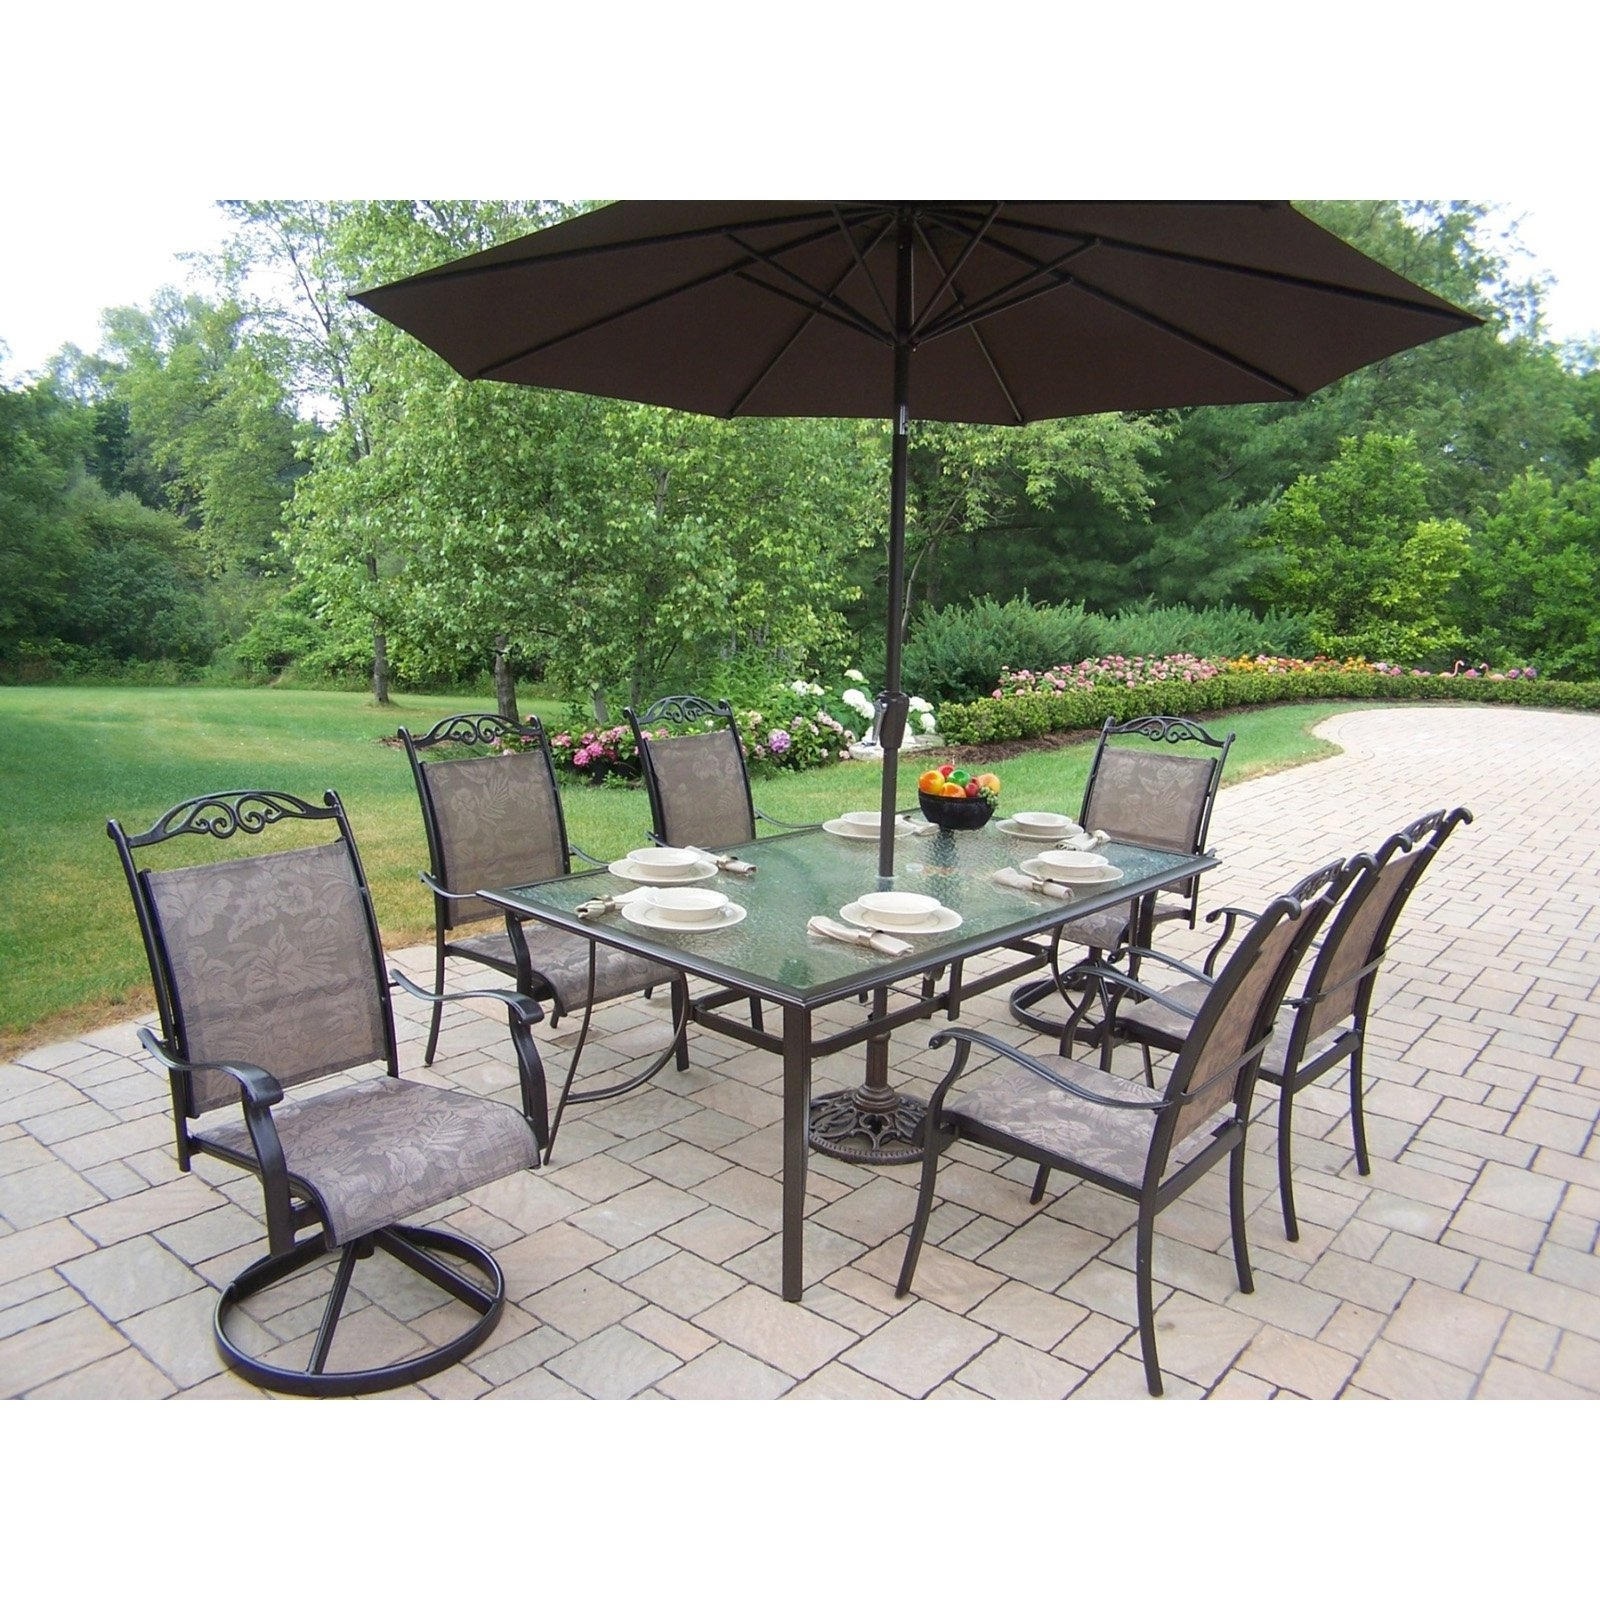 Patio Ideas Outdoor Dining Sets With Umbrella Small Piece Set Round In Preferred Patio Table Sets With Umbrellas (View 10 of 20)